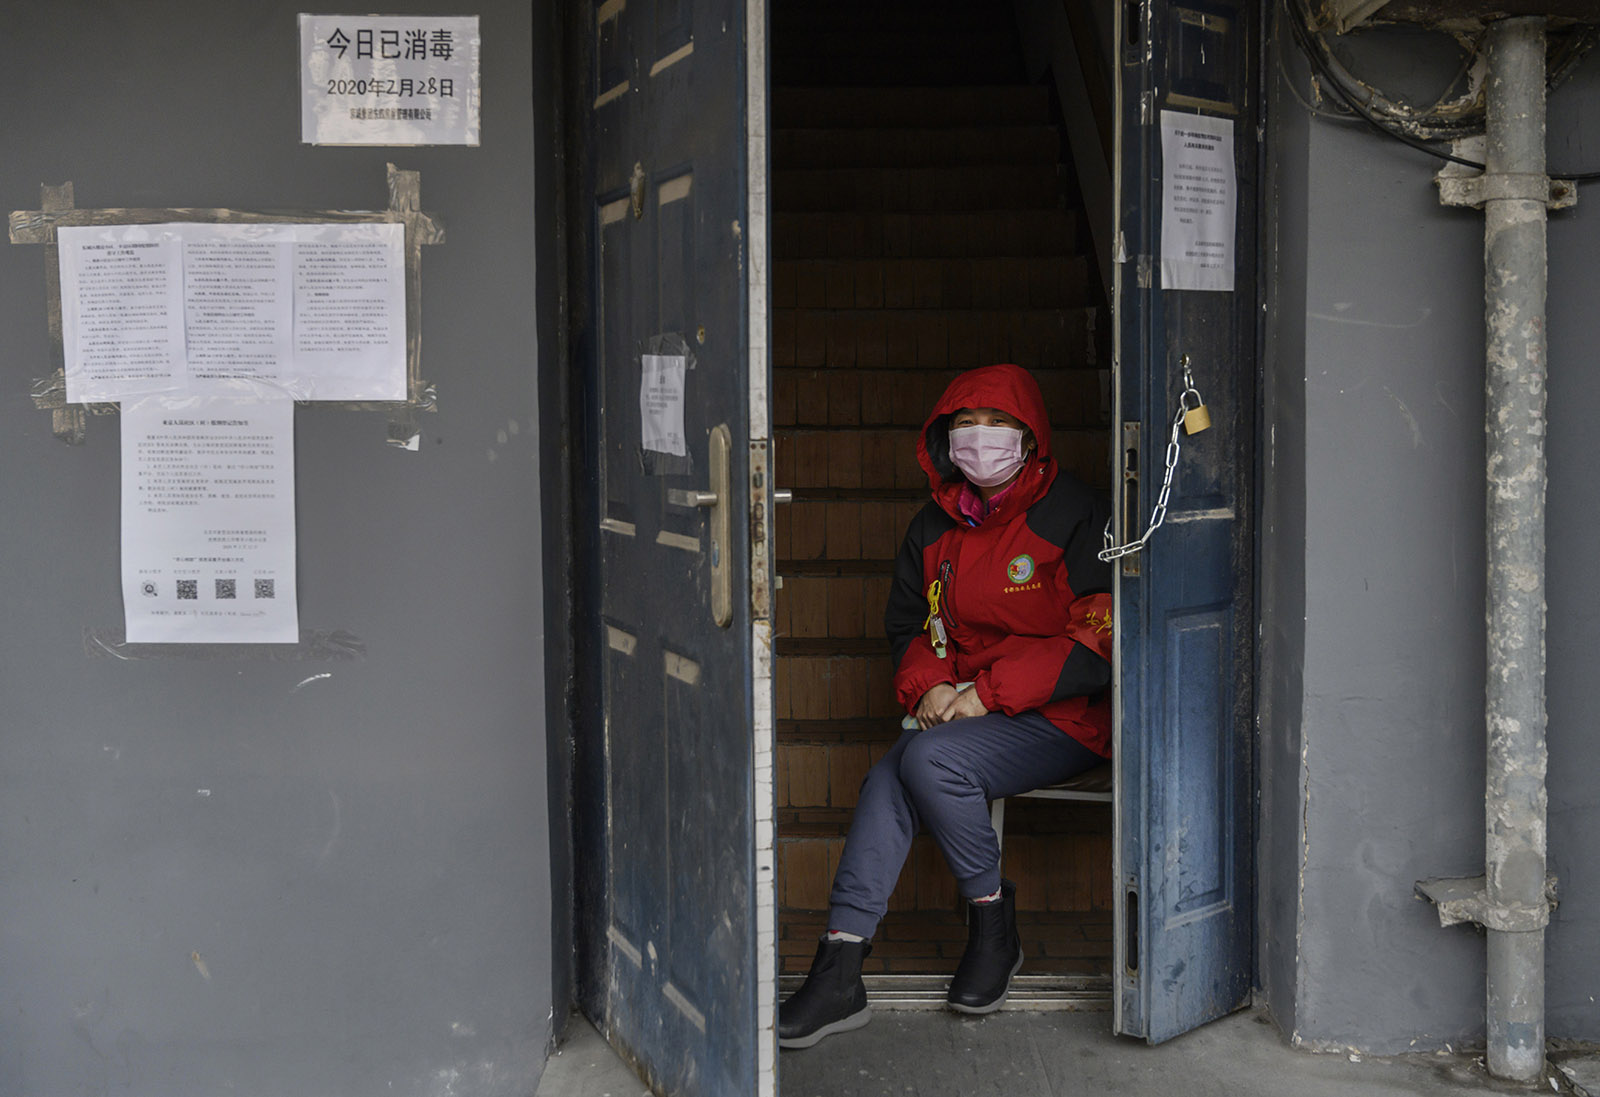 A neighborhood committee member guarding the entrance of a residential building as efforts continued to control the spread of coronavirus infection, Beijing, China, February 28, 2020